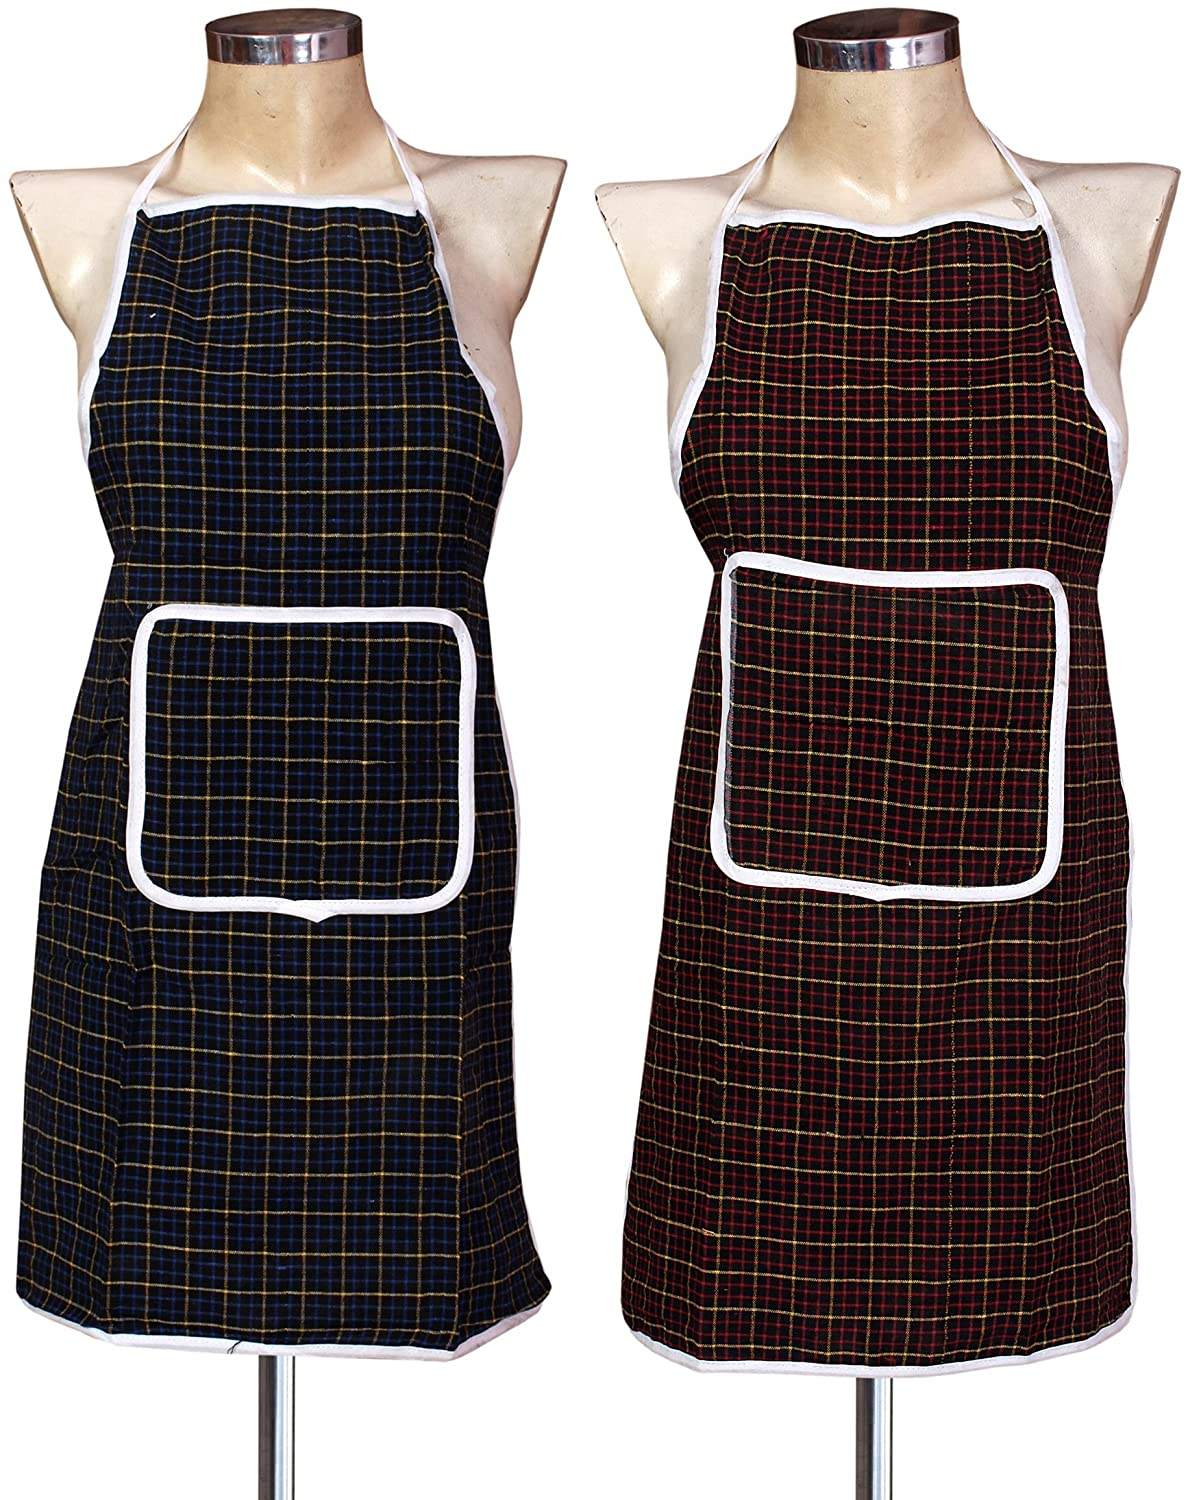 Yellow Weaves™ Check Design Waterproof Cotton Kitchen Aprons - Pack Of 2